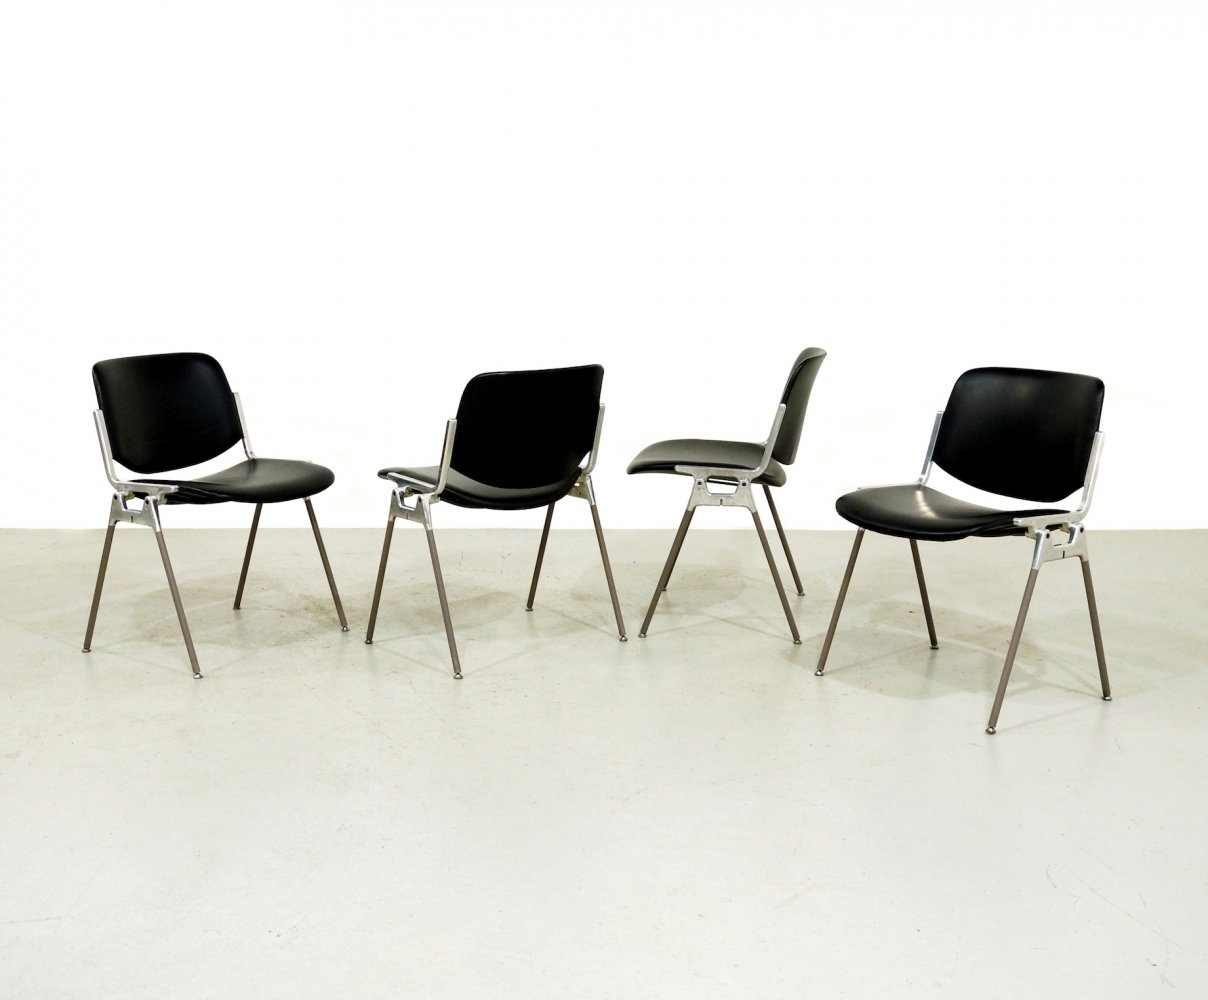 Set of 4 DSC 106 dining chairs by Giancarlo Piretti for Anonima Castelli, 1970s